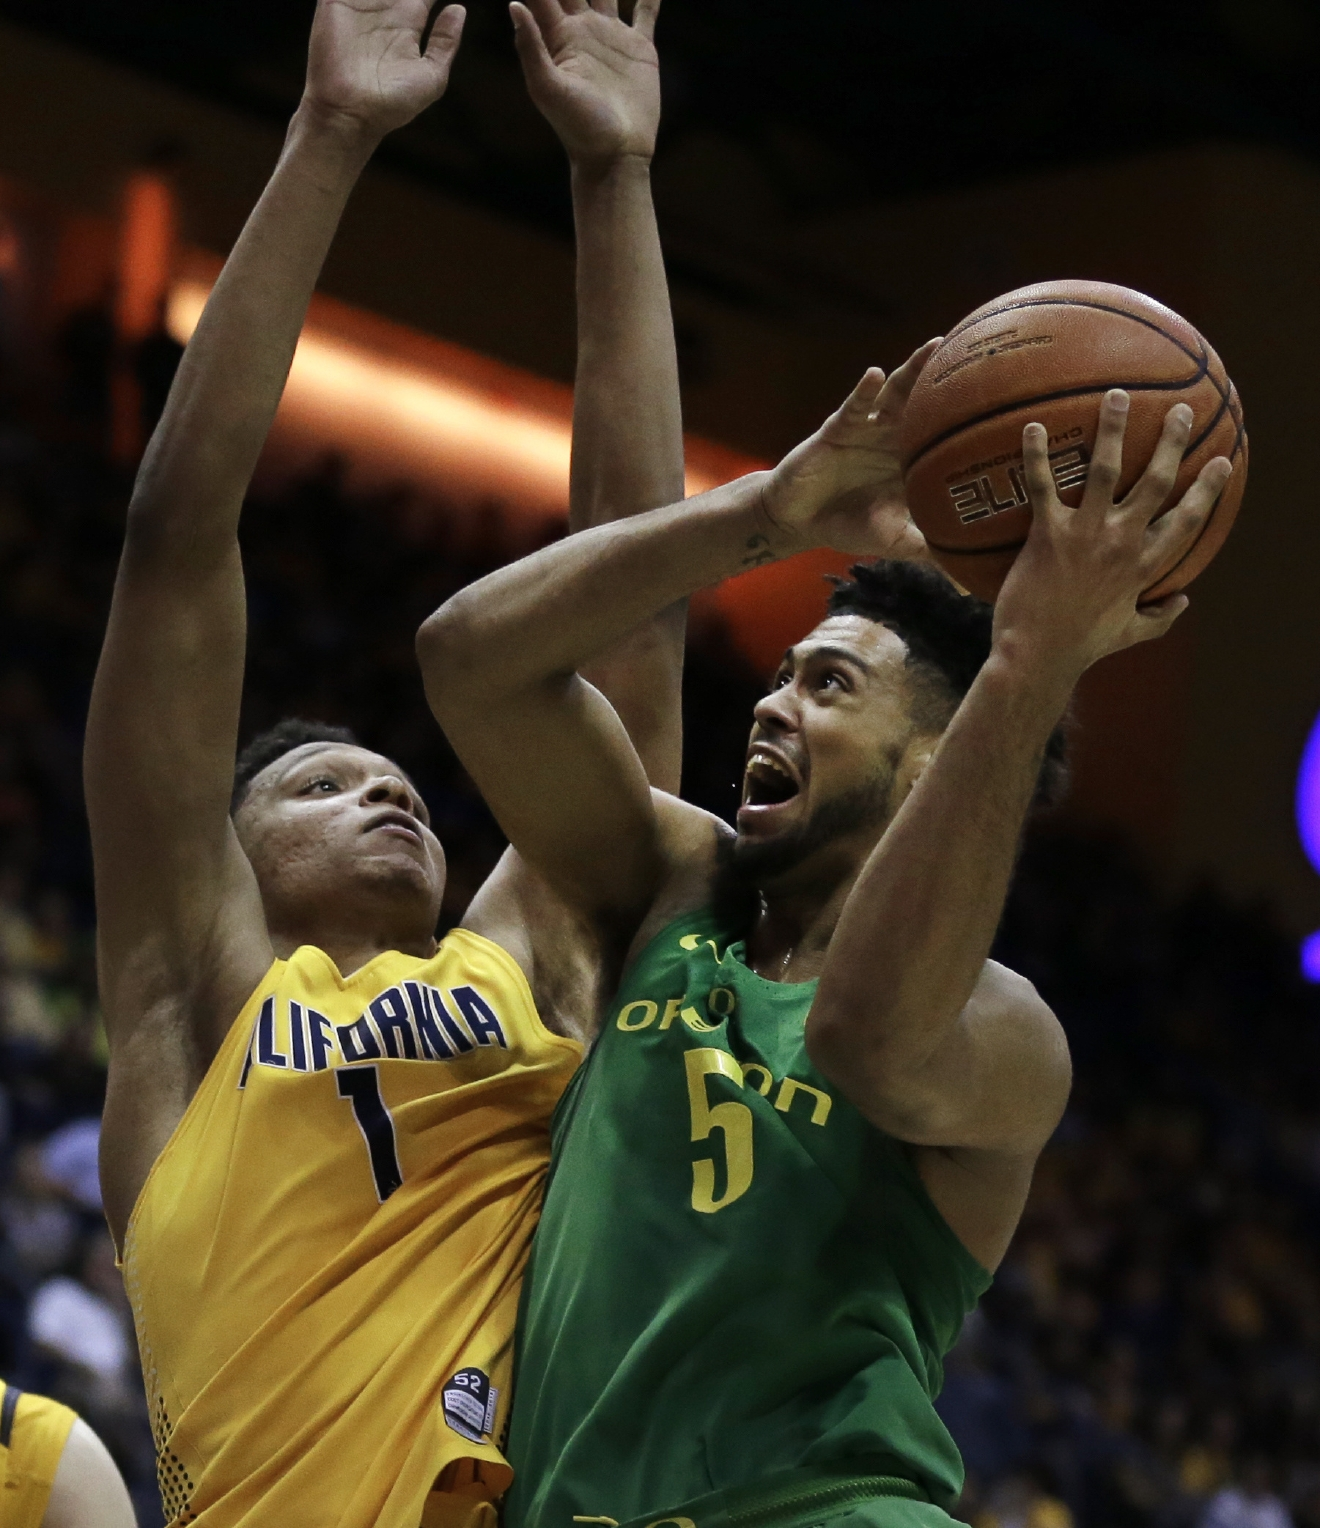 Oregon's Tyler Dorsey, right, shoots against California's Ivan Rabb in the second half of an NCAA college basketball game, Wednesday, Feb. 22, 2017, in Berkeley, Calif. Oregon won 68-65. (AP Photo/Ben Margot)